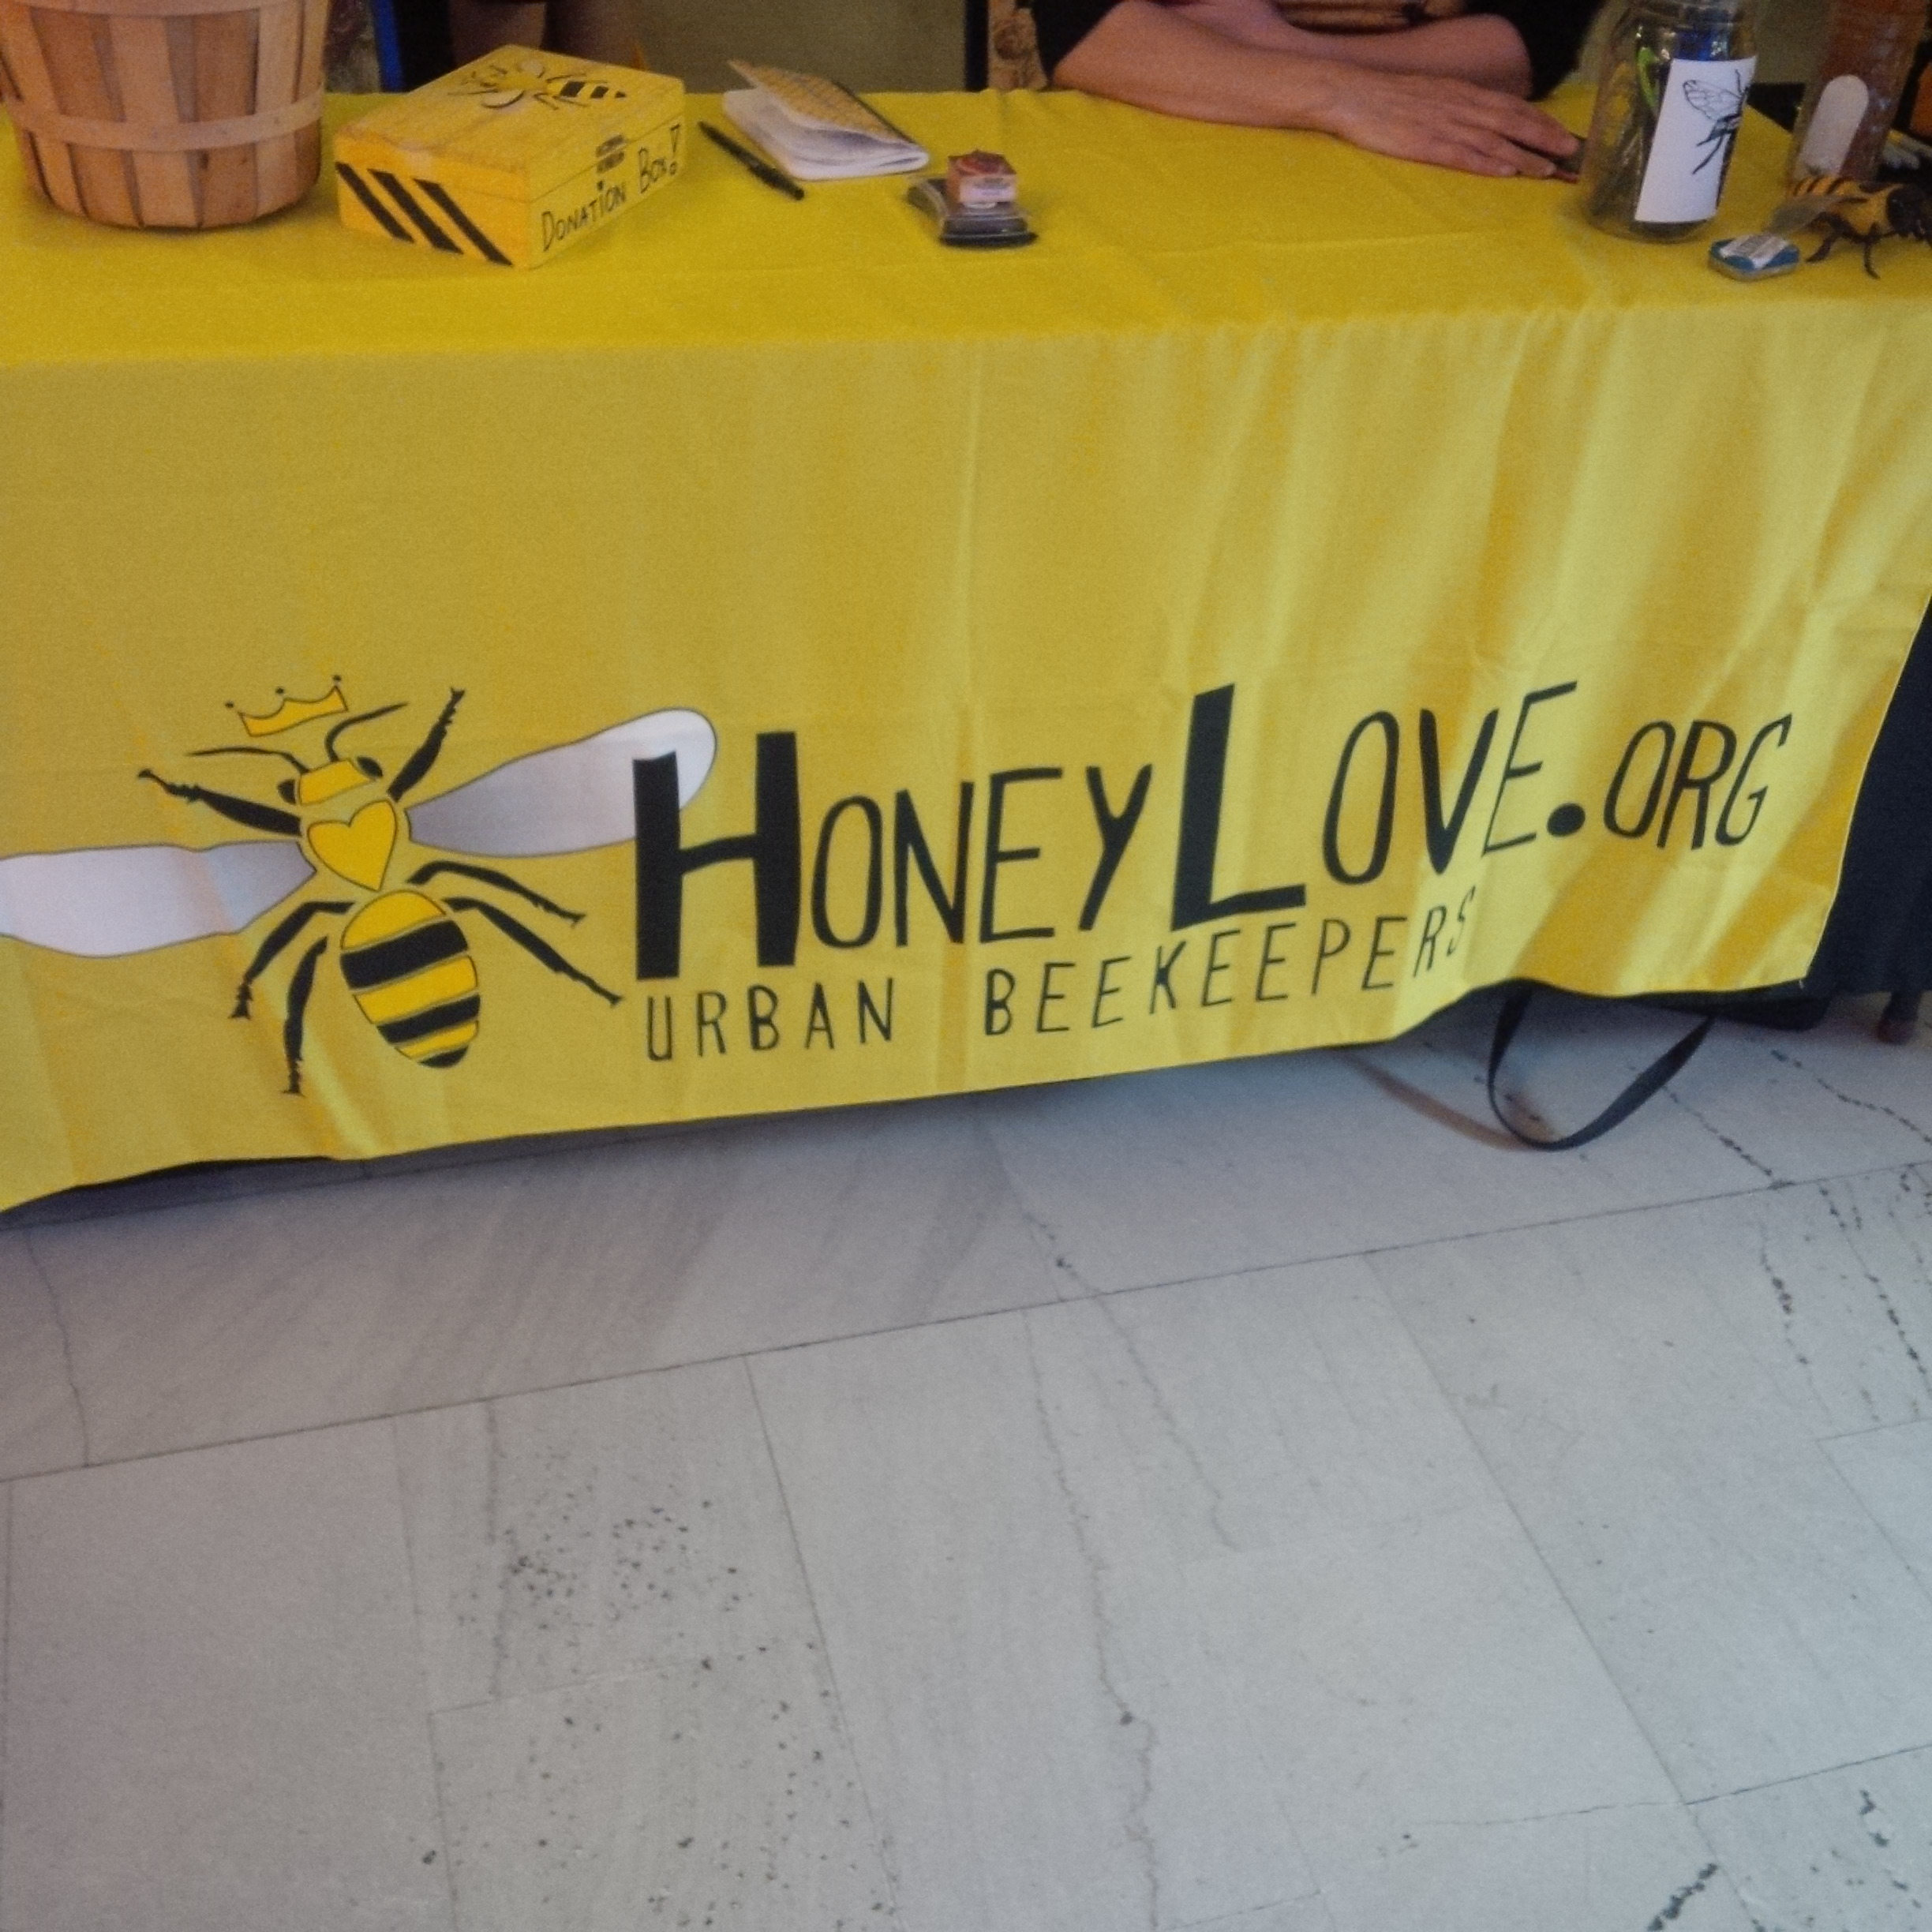 Honeylove.org is behind the Natural Beekeeping Conference.